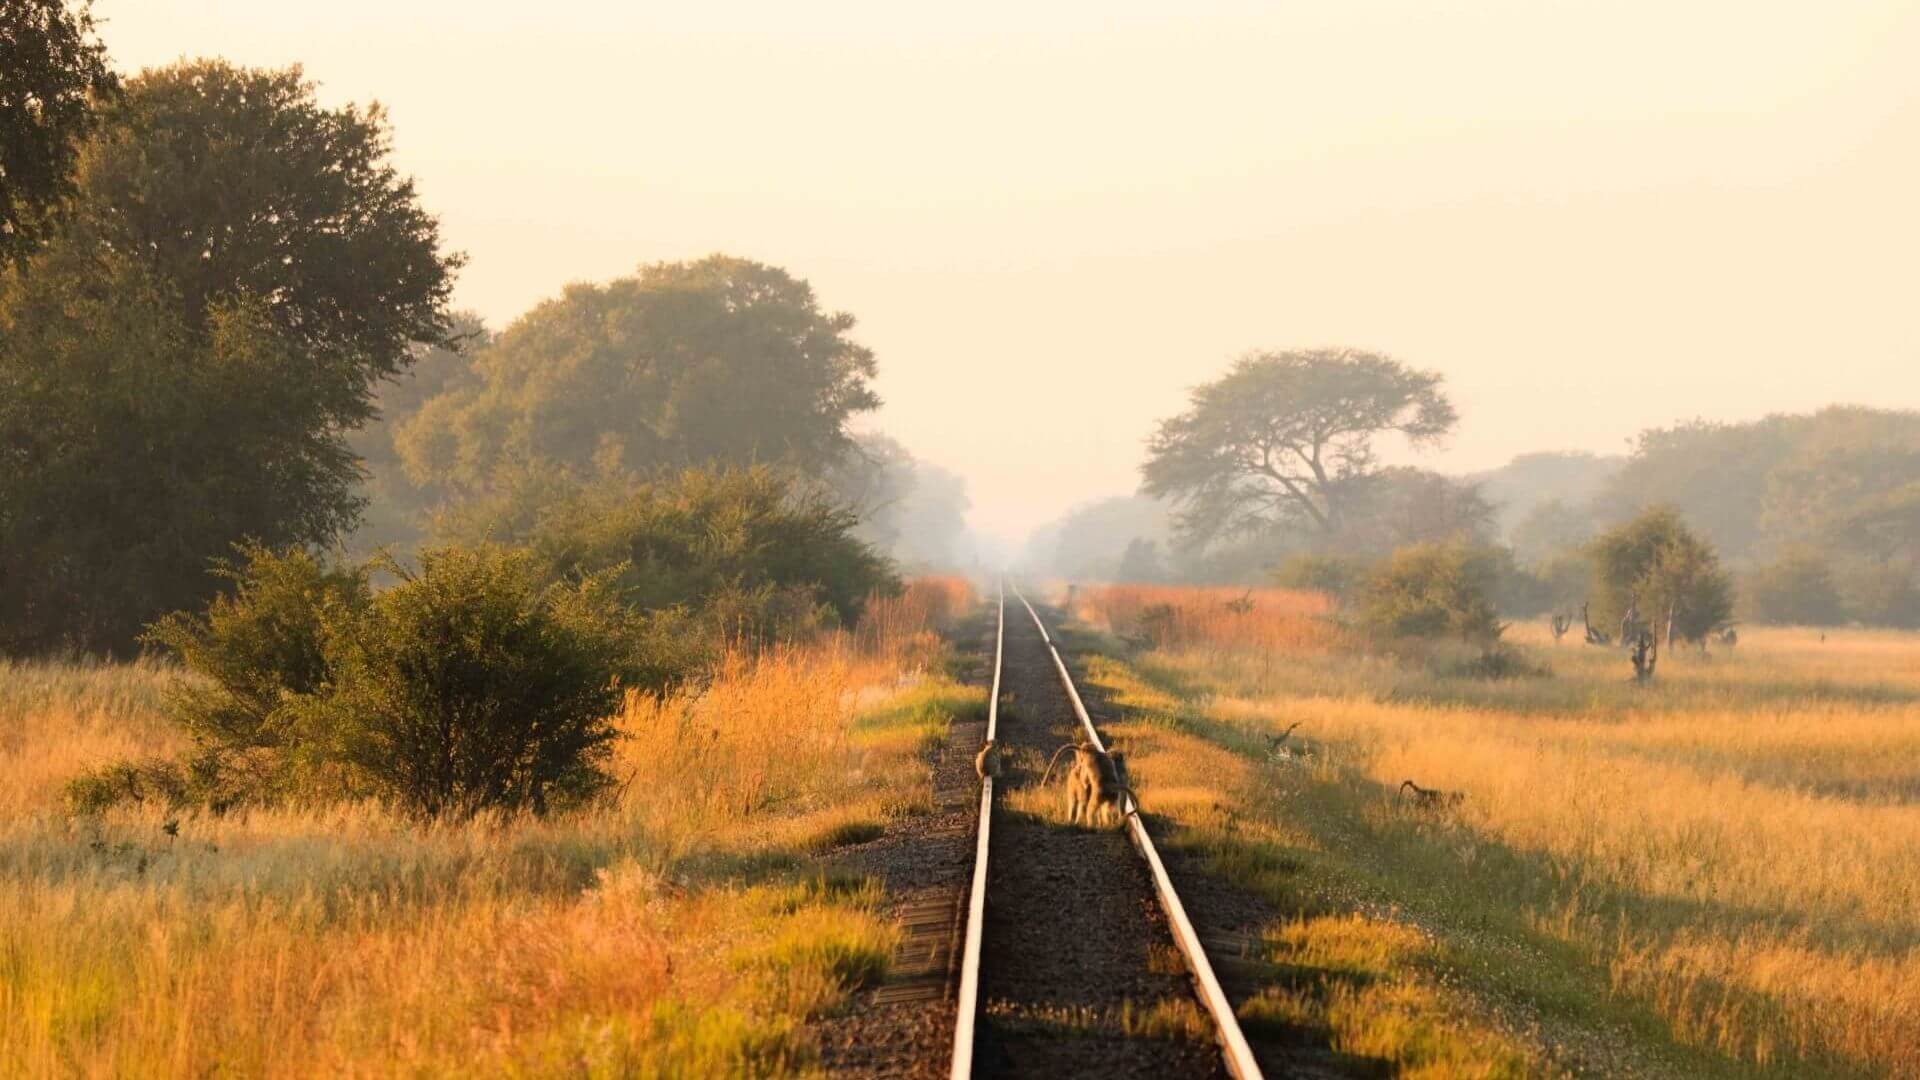 Monkeys on train tracks, Hwange National Park, Zimbabwe